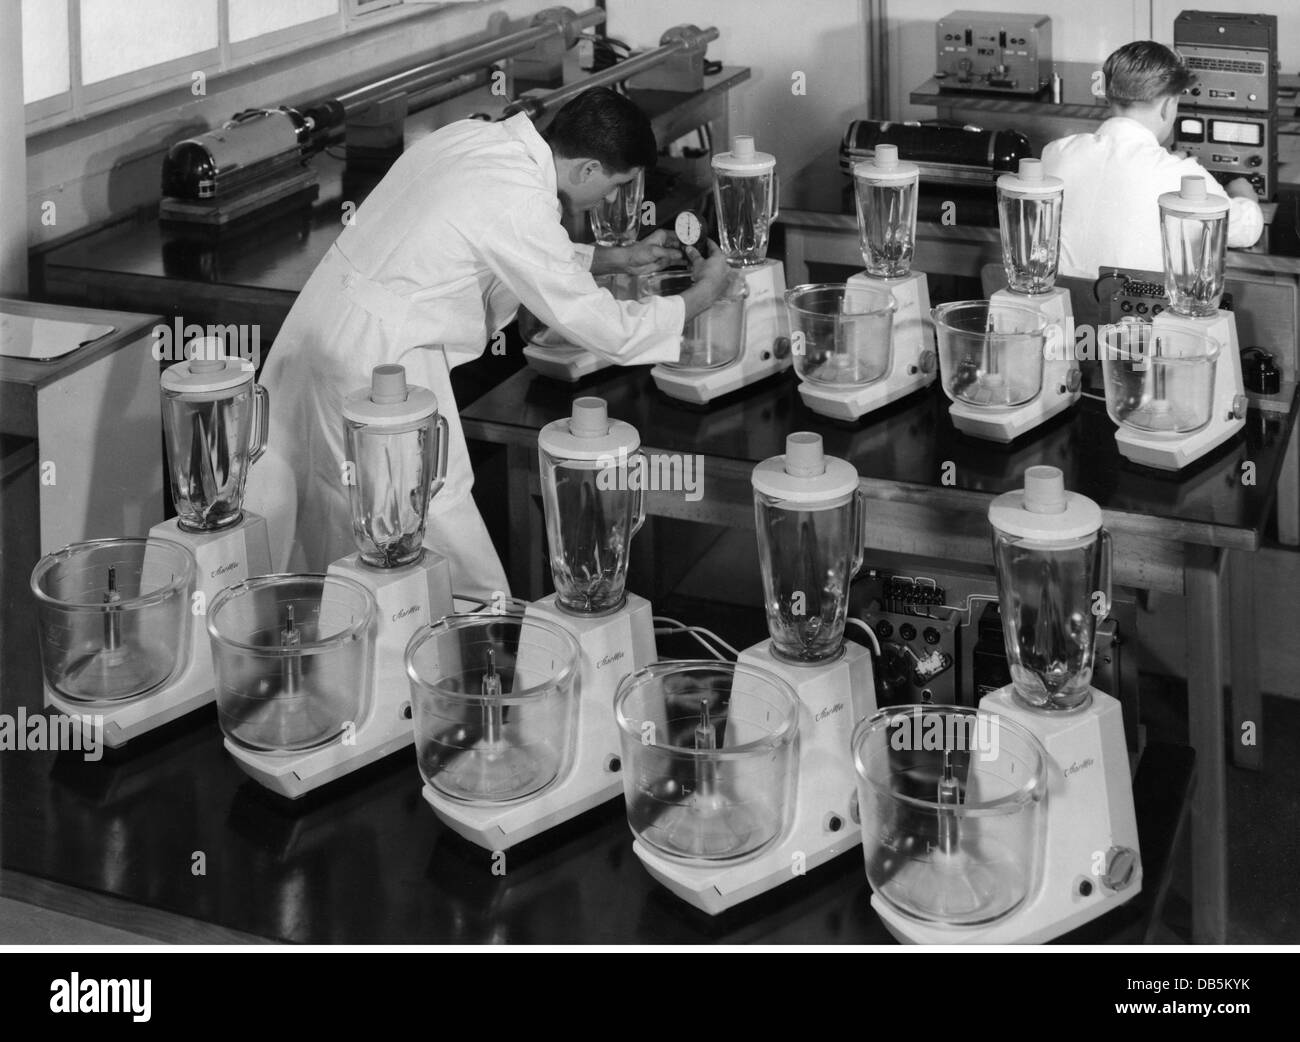 industry, household appliance, control of Starmix mixers, Elektrostar, 1958, Additional-Rights-Clearences-NA - Stock Image